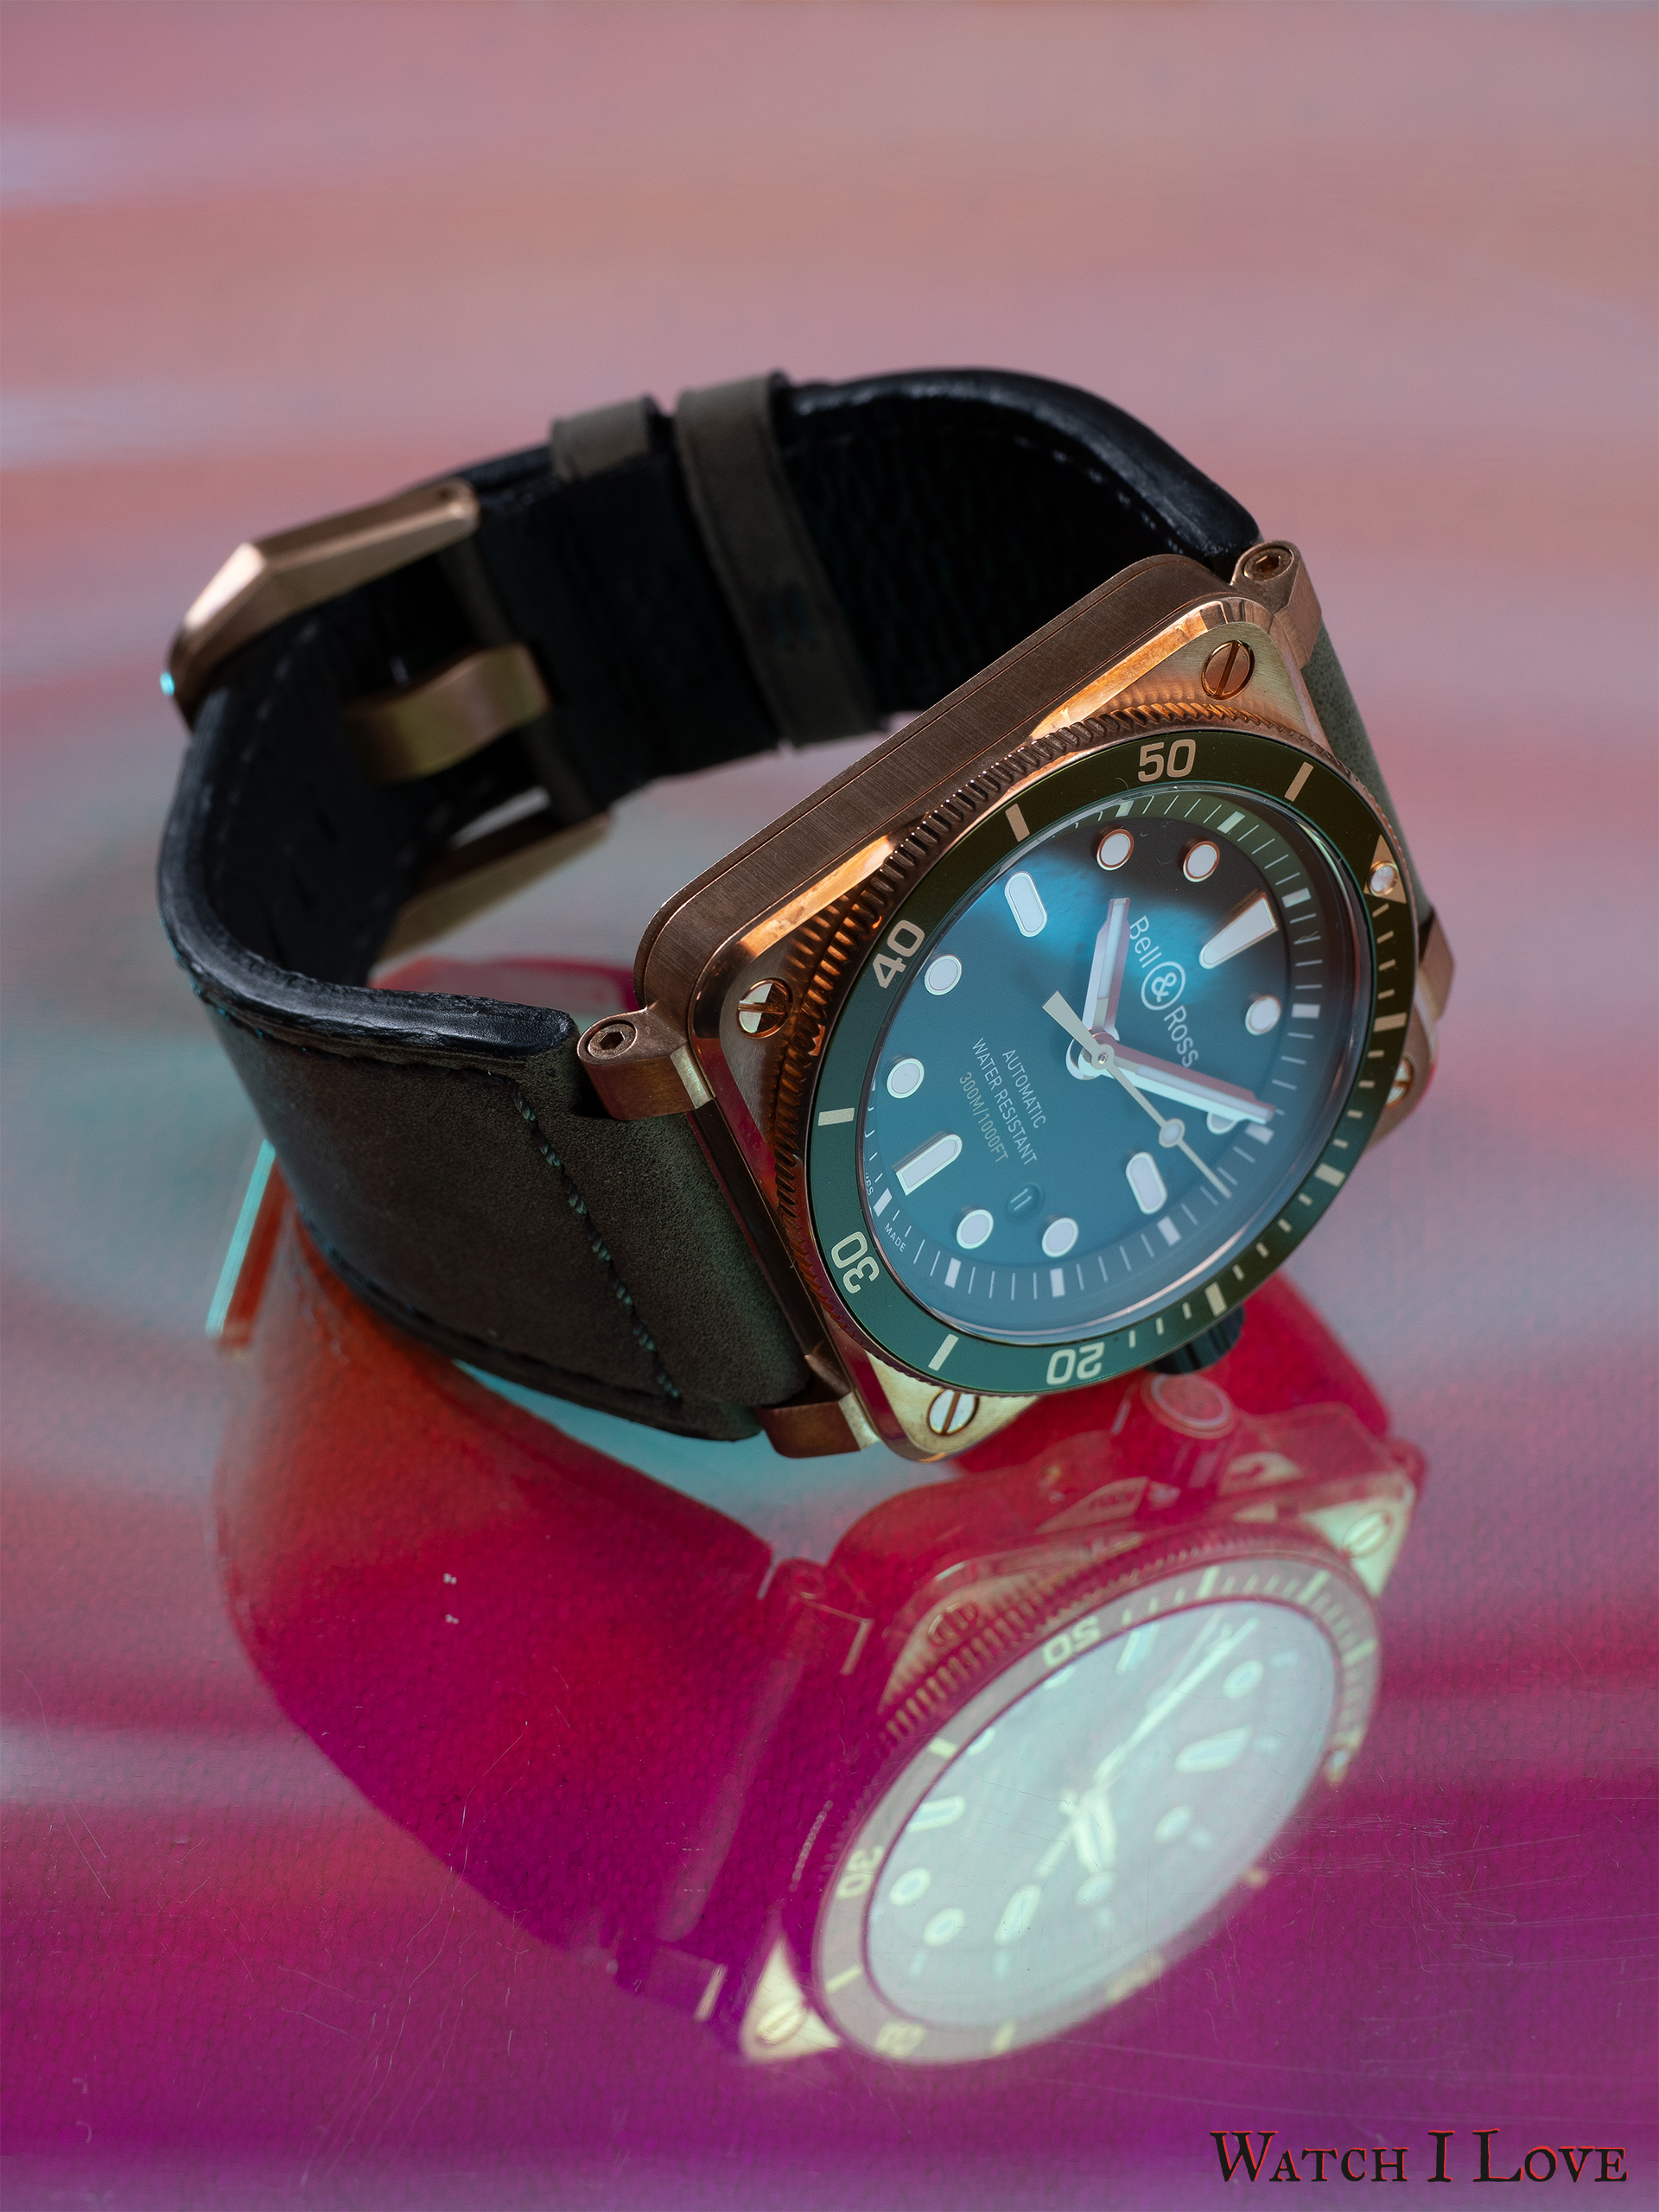 The Green Bronze Diver in a pink world